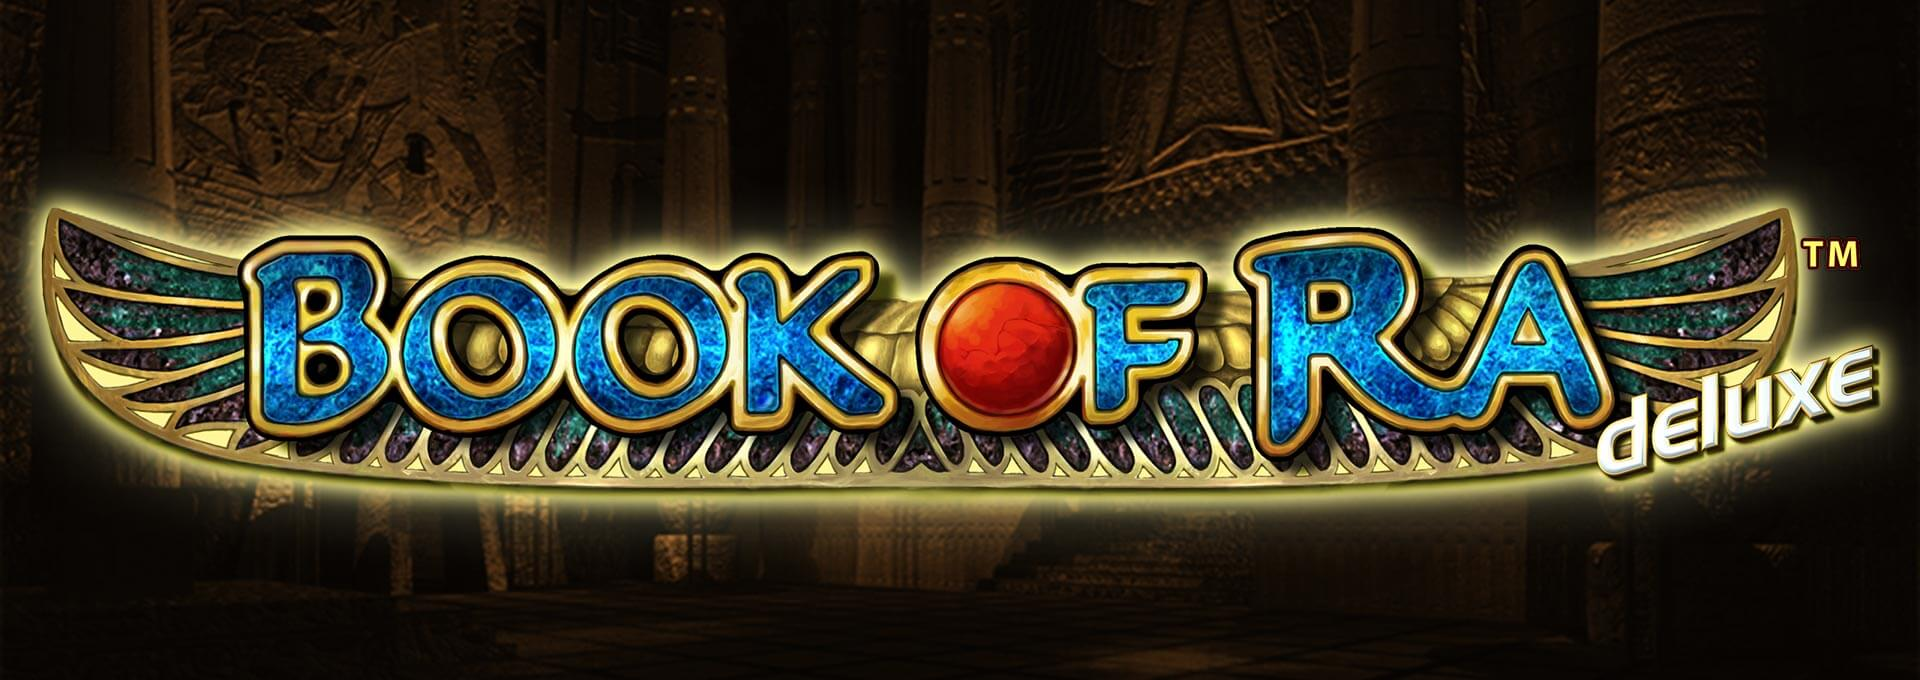 royal vegas online casino star games book of ra